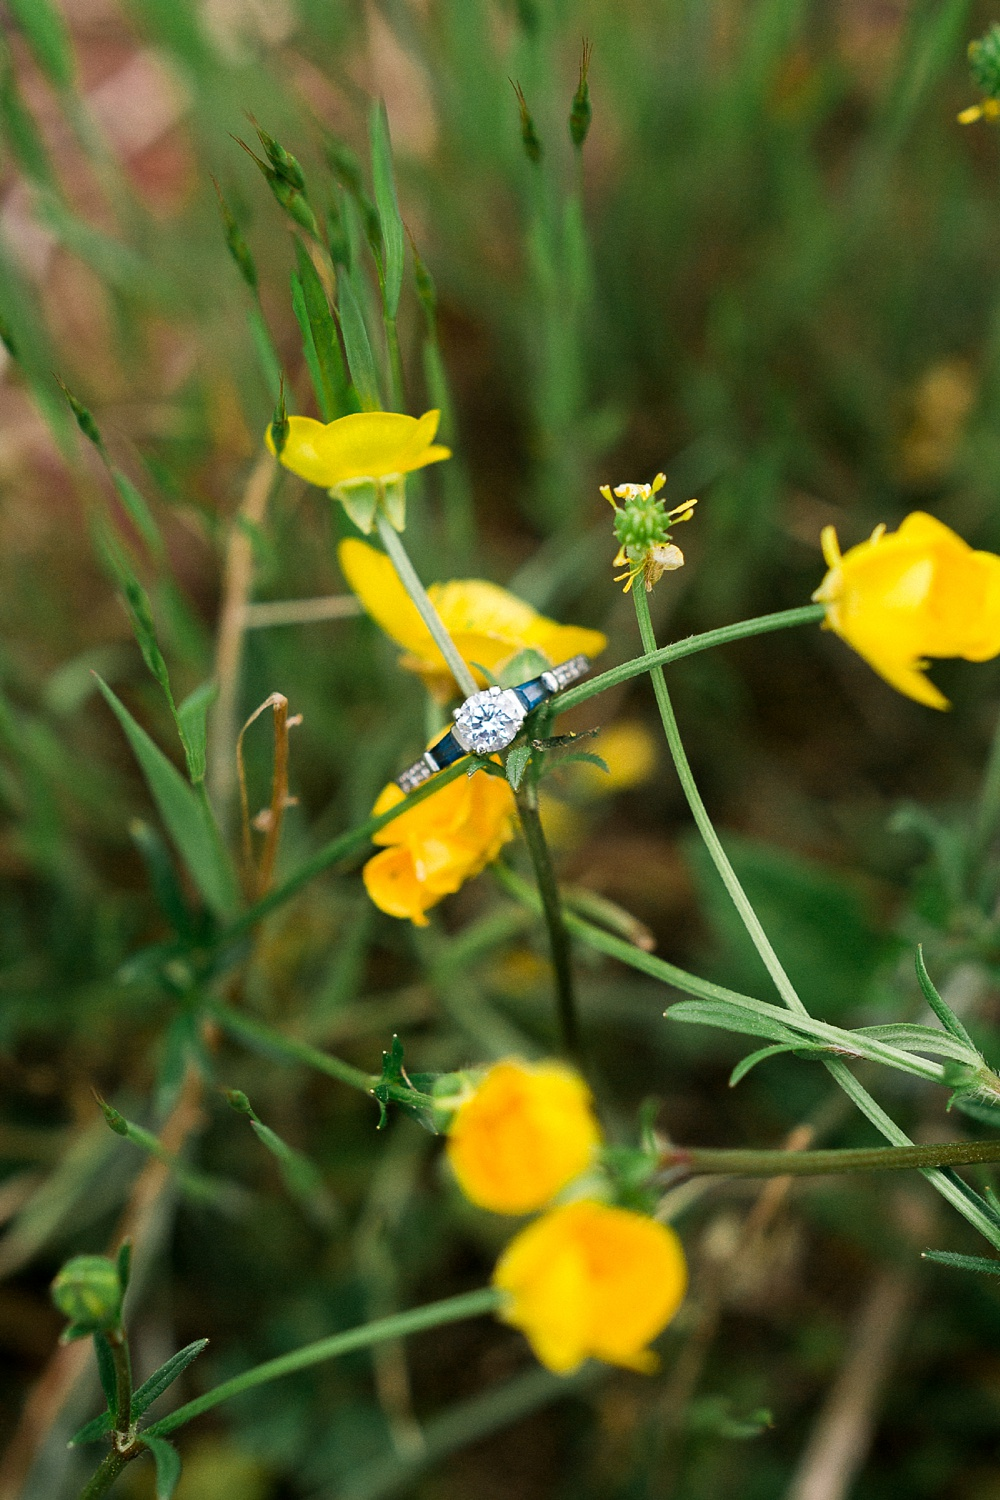 vintage sapphire engagement ring rests on spring buttercups